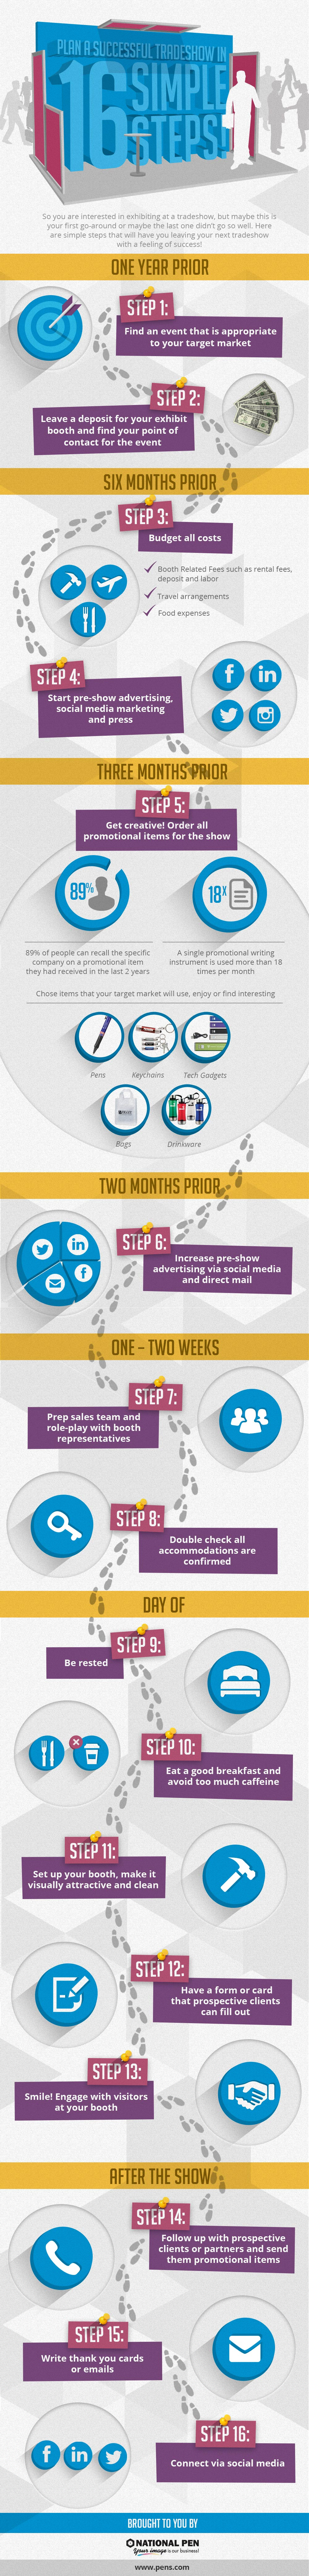 tradeshow success infographic